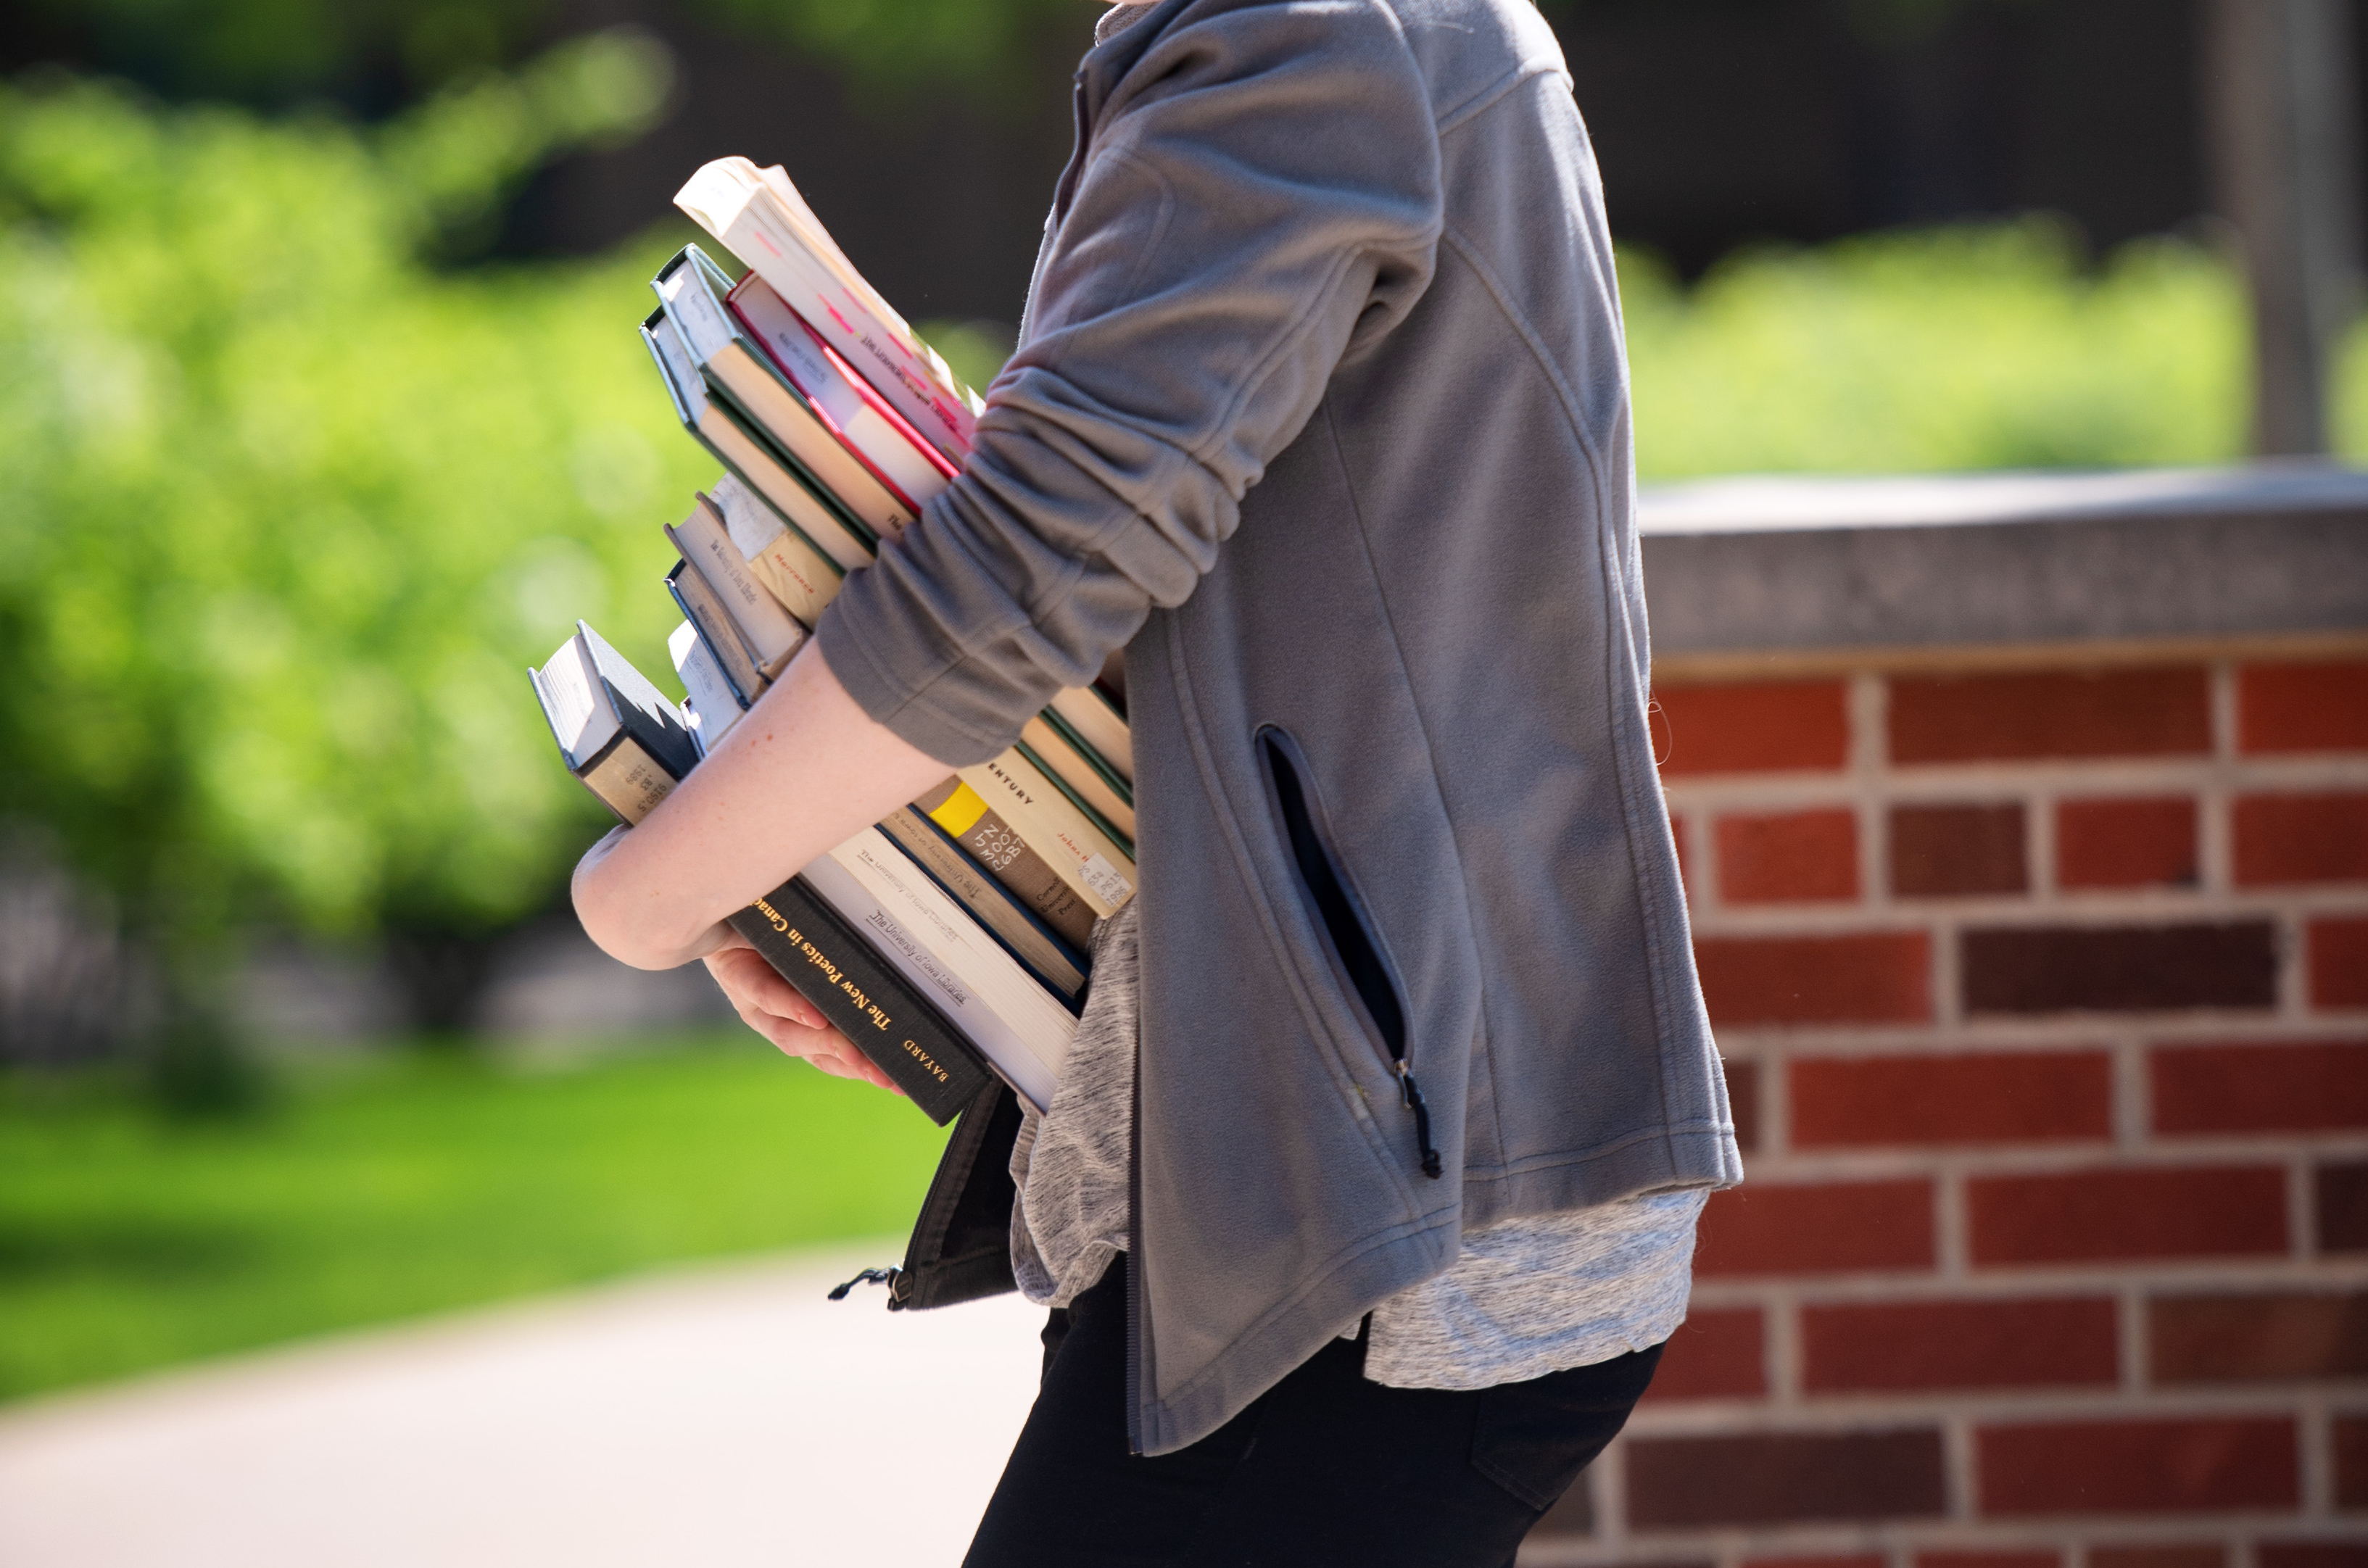 student carrying way too many books